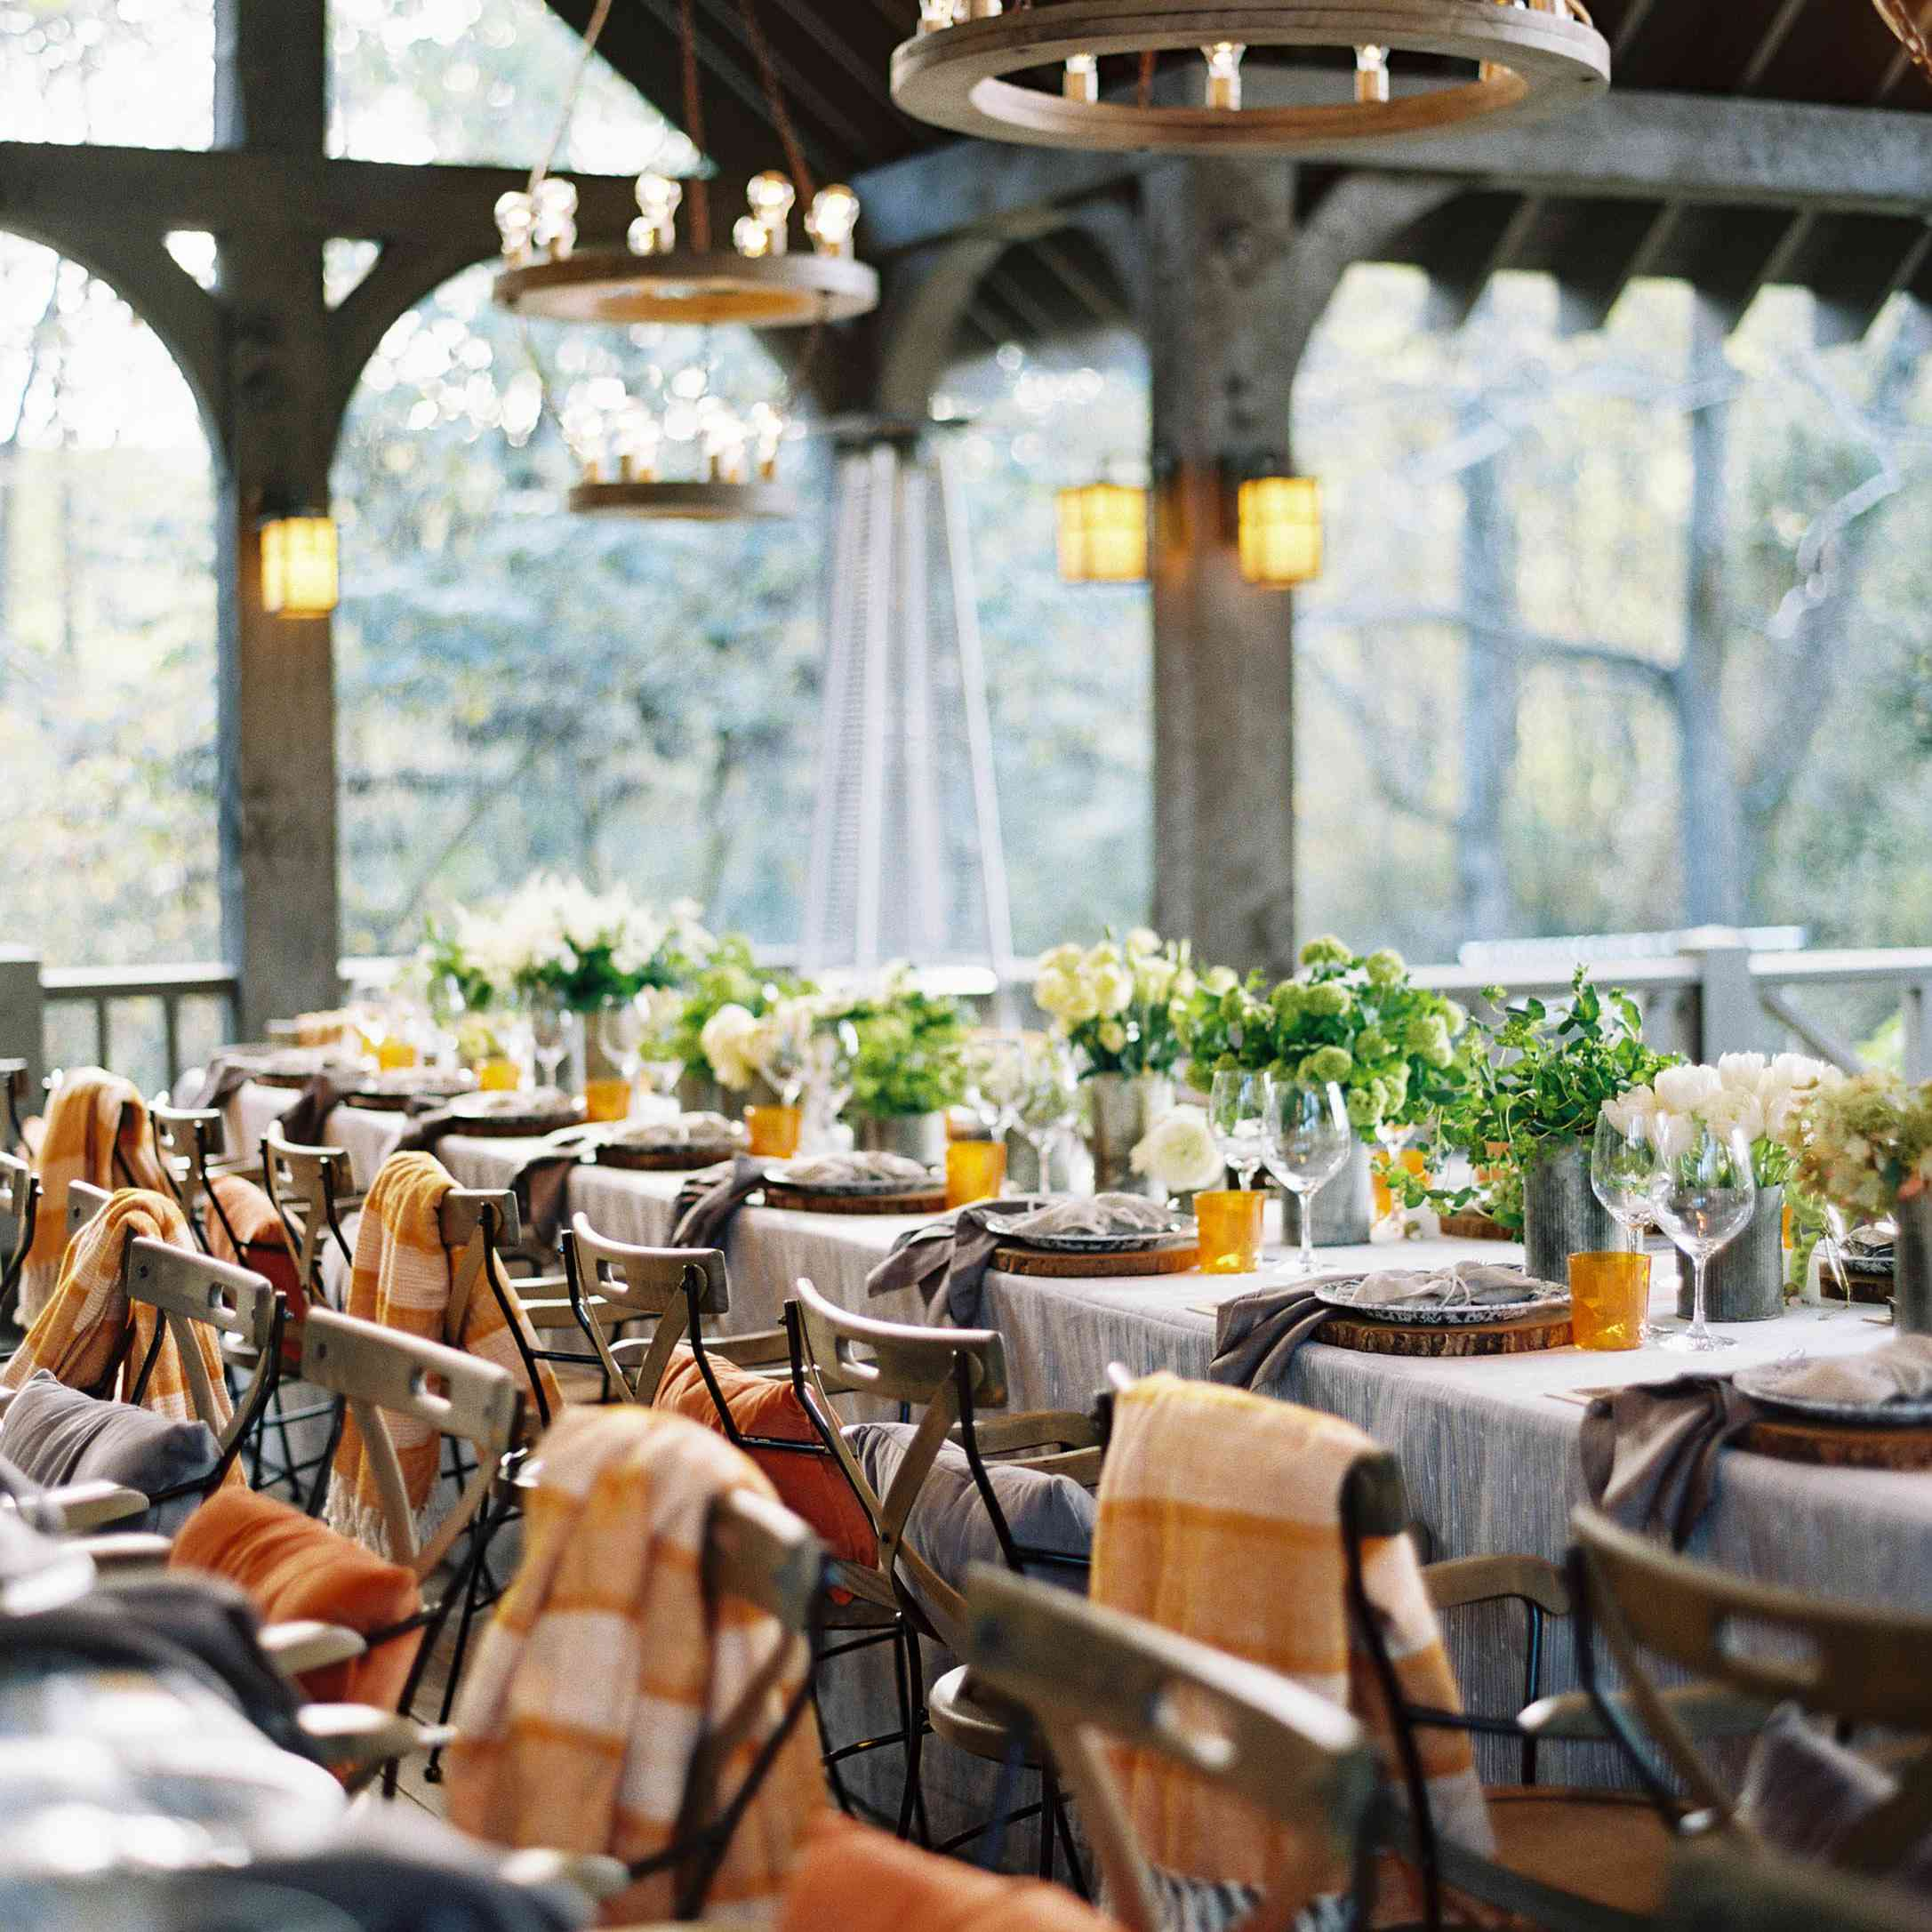 Intimate wedding reception with blankets and warm lighting